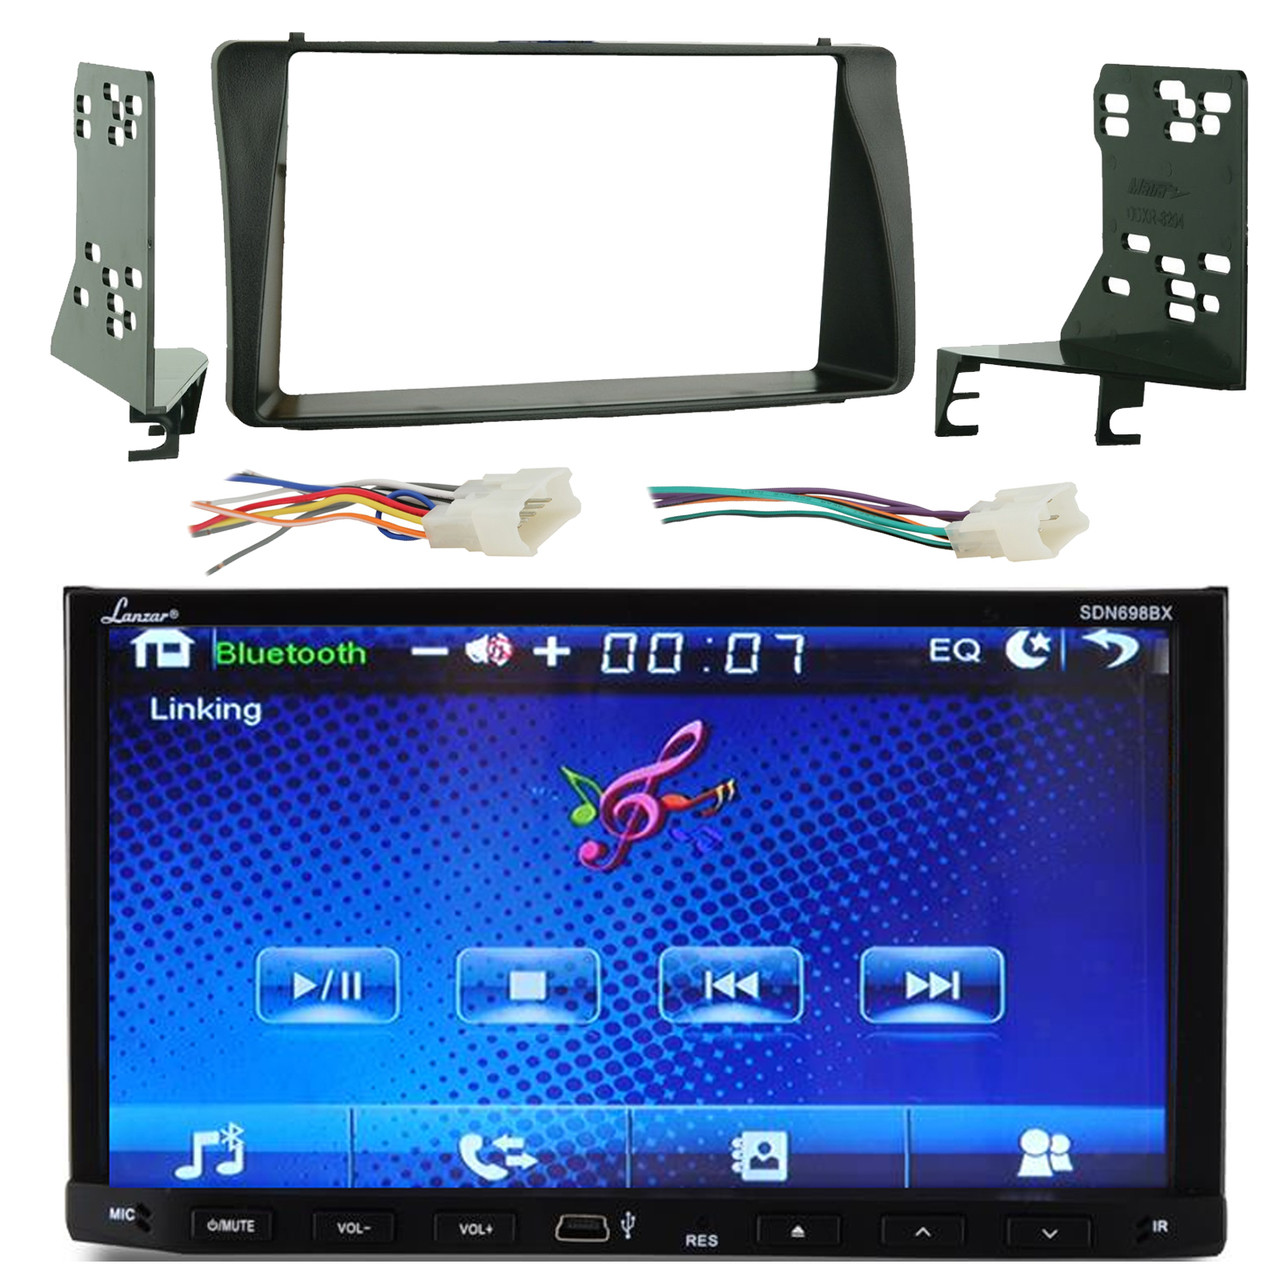 Lanzar SDN698BX 7'' Double DIN TFT Motorized Slide-Down Panel Touch on battery harness, electrical harness, maxi-seal harness, suspension harness, radio harness, oxygen sensor extension harness, amp bypass harness, pet harness, obd0 to obd1 conversion harness, dog harness, swing harness, nakamichi harness, pony harness, cable harness, fall protection harness, safety harness, alpine stereo harness, engine harness,